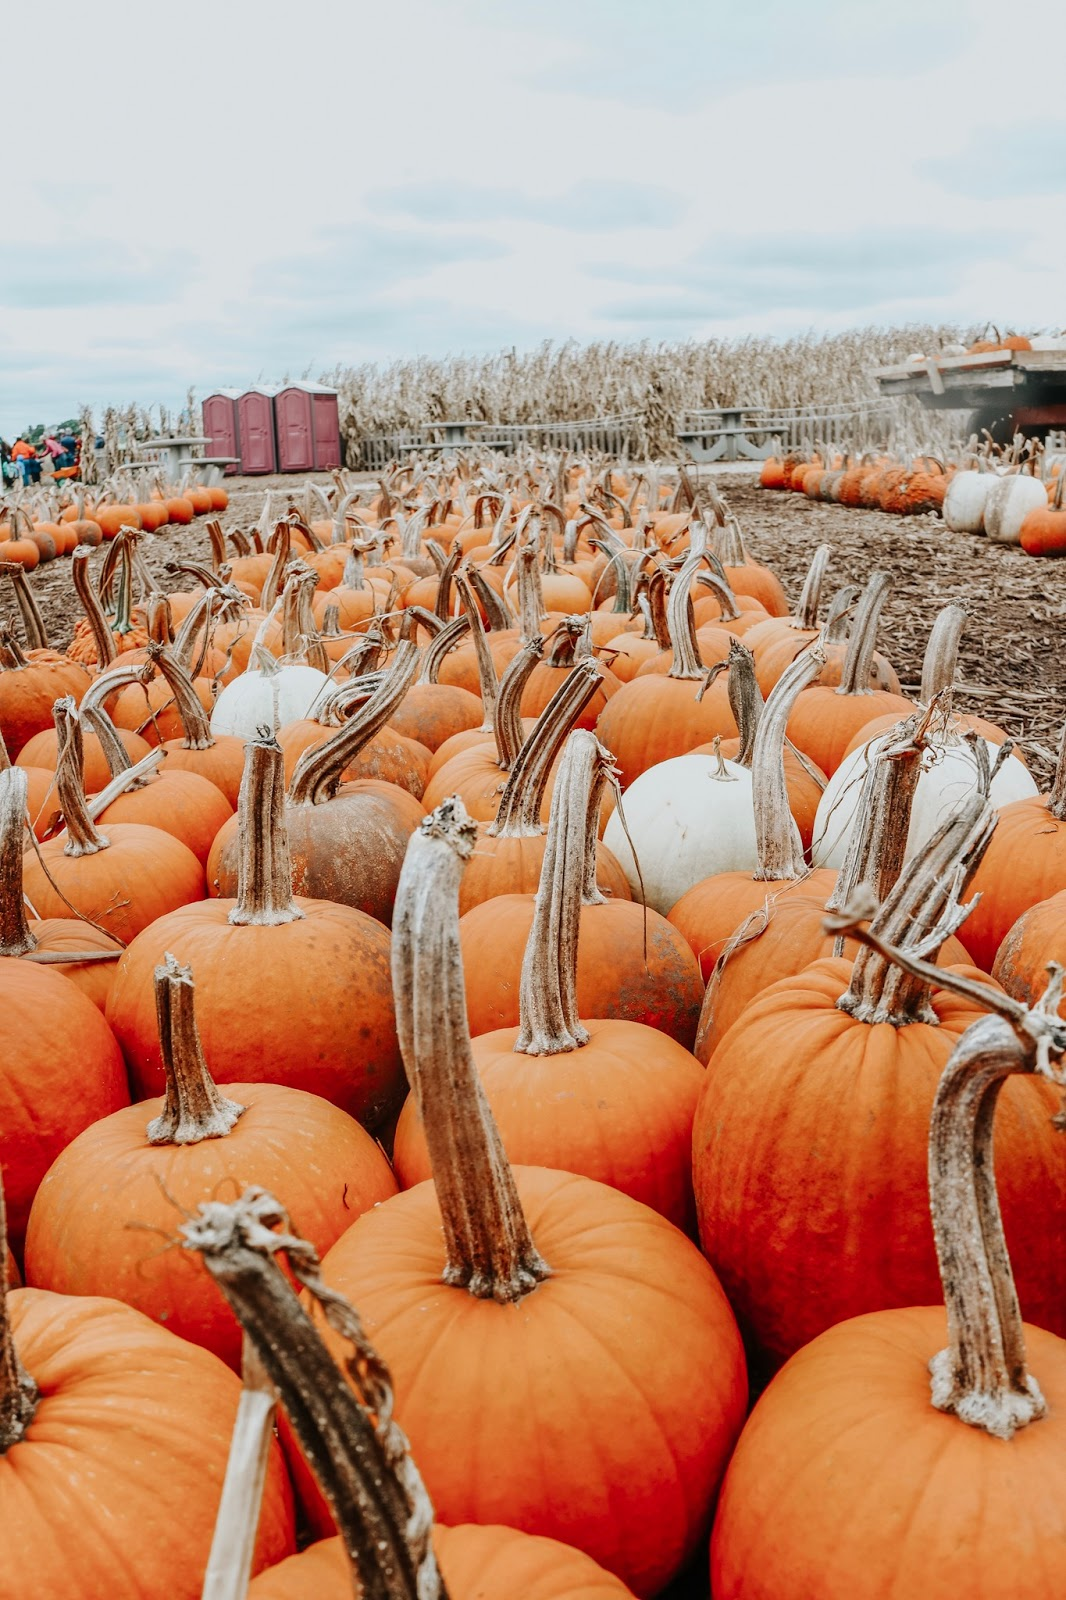 Pumpkin patch at Schuster's Farm in Deerfield, Wisconsin